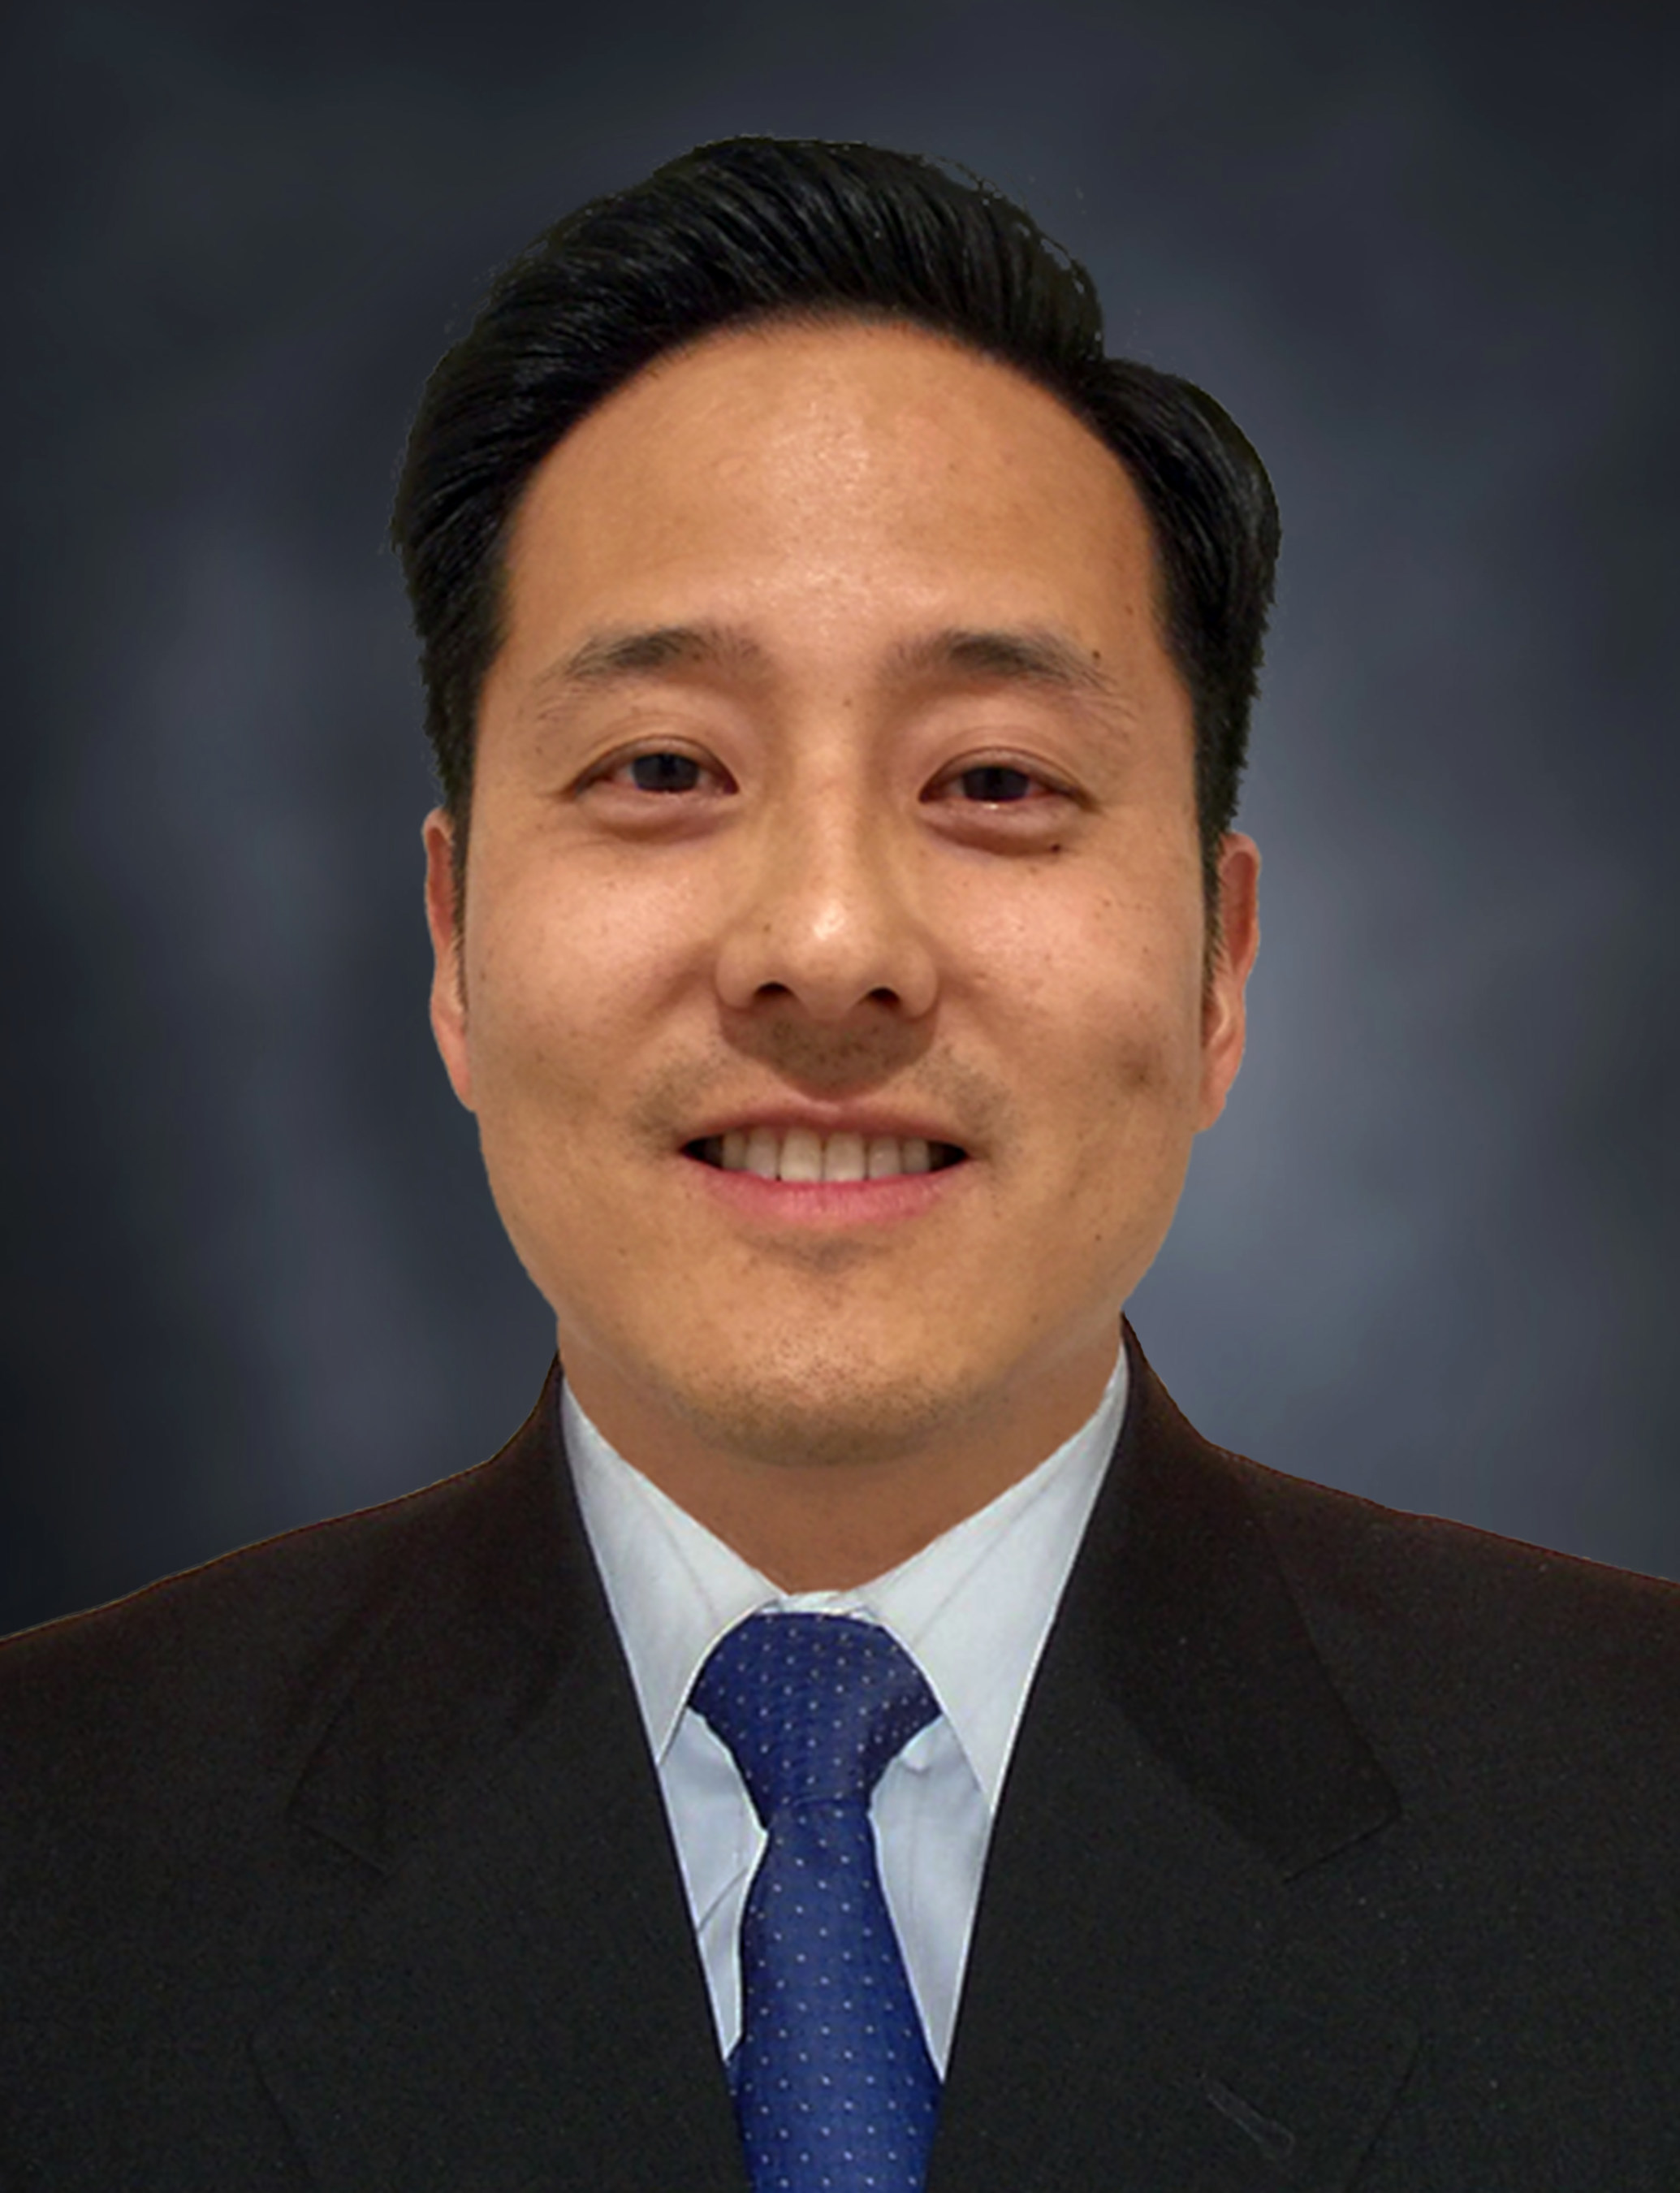 Miles Oh Joins WASH Multifamily Laundry as Vice President of M&A and Business Development